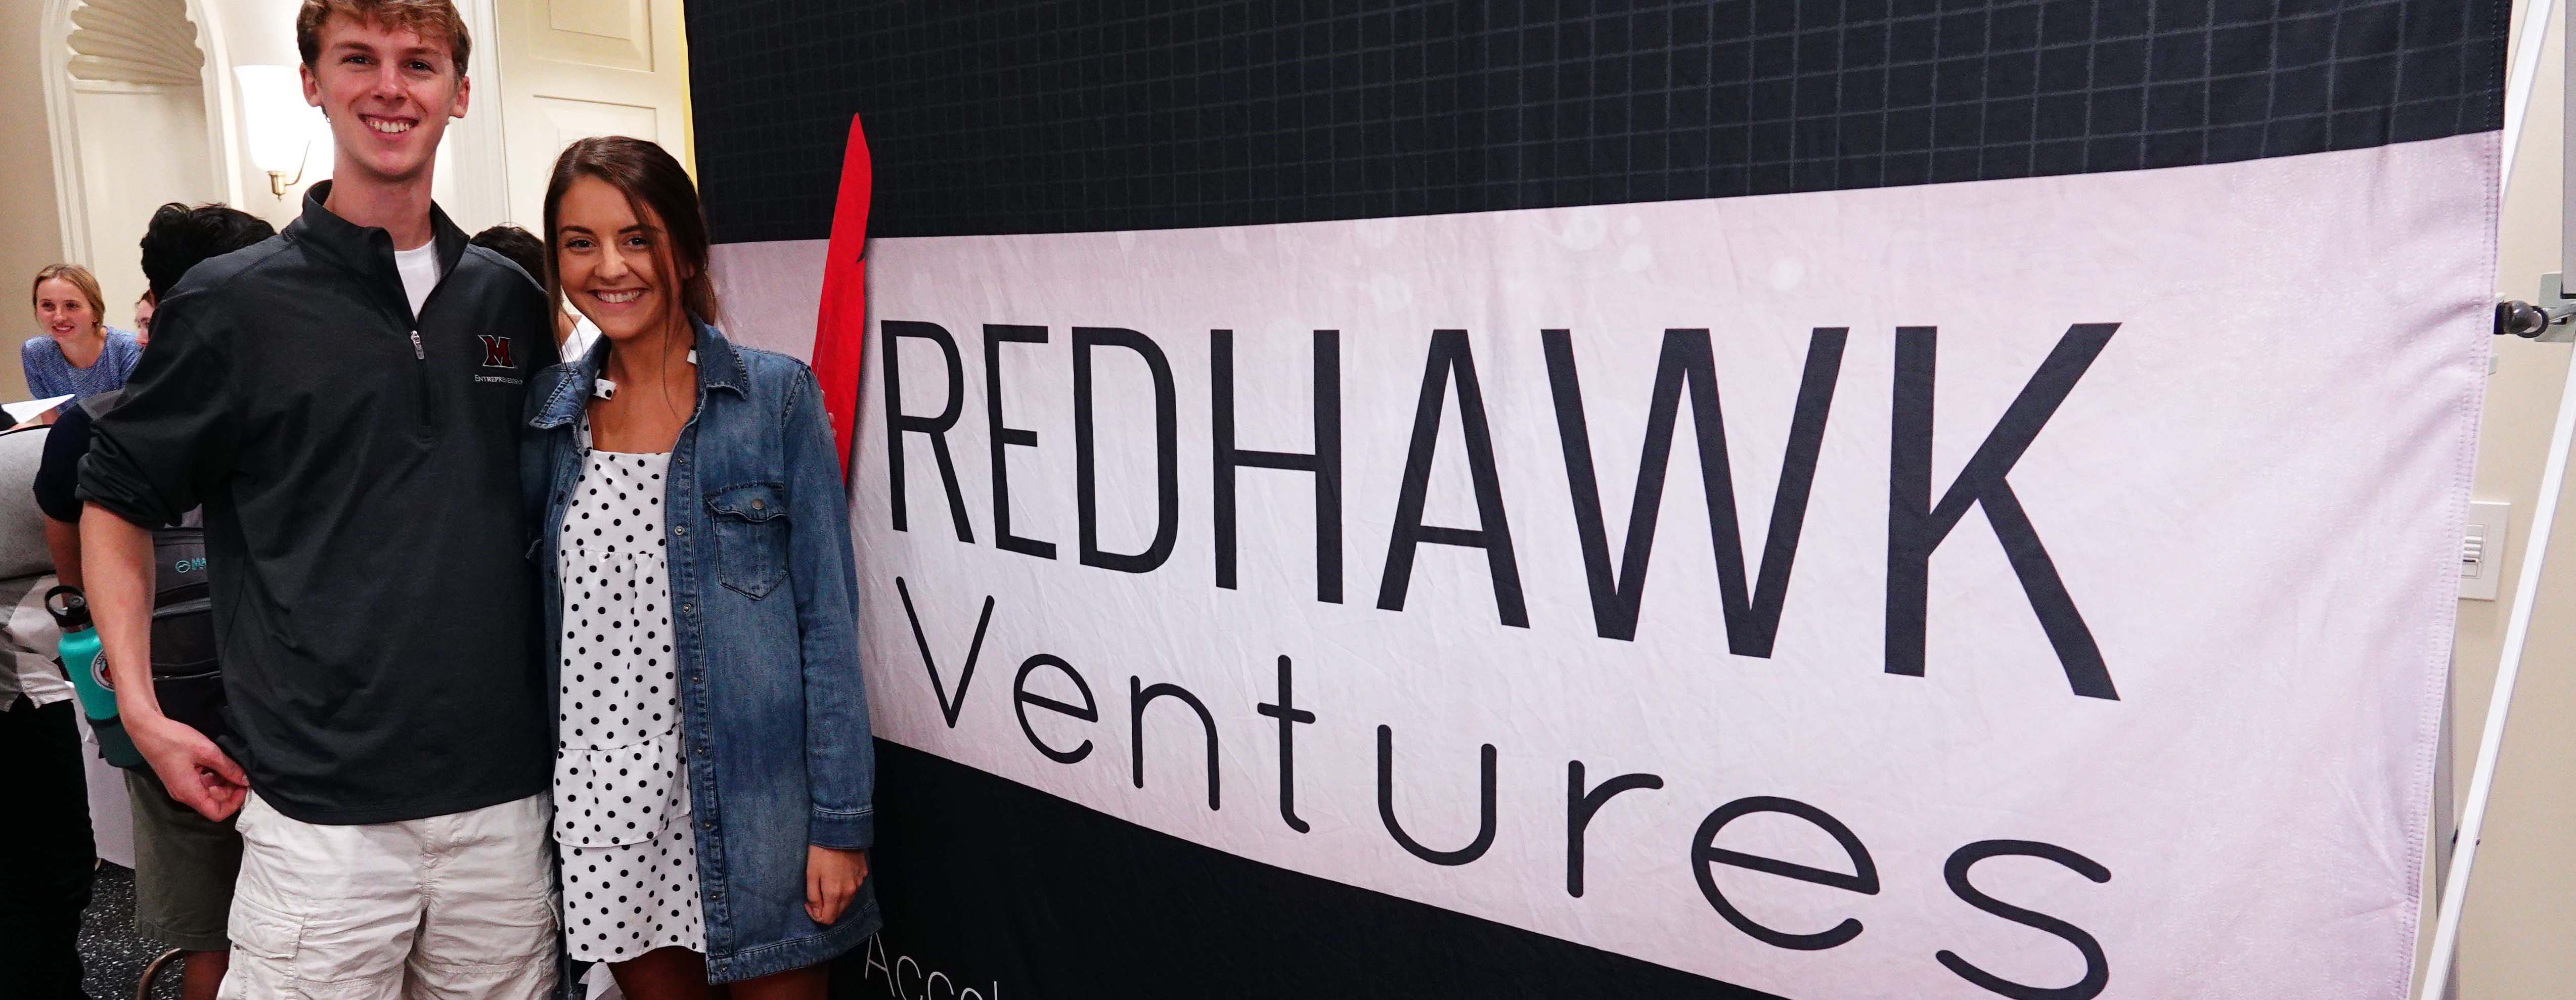 Laura Mena and Andy Newman pose by a Redhawk Ventures poster